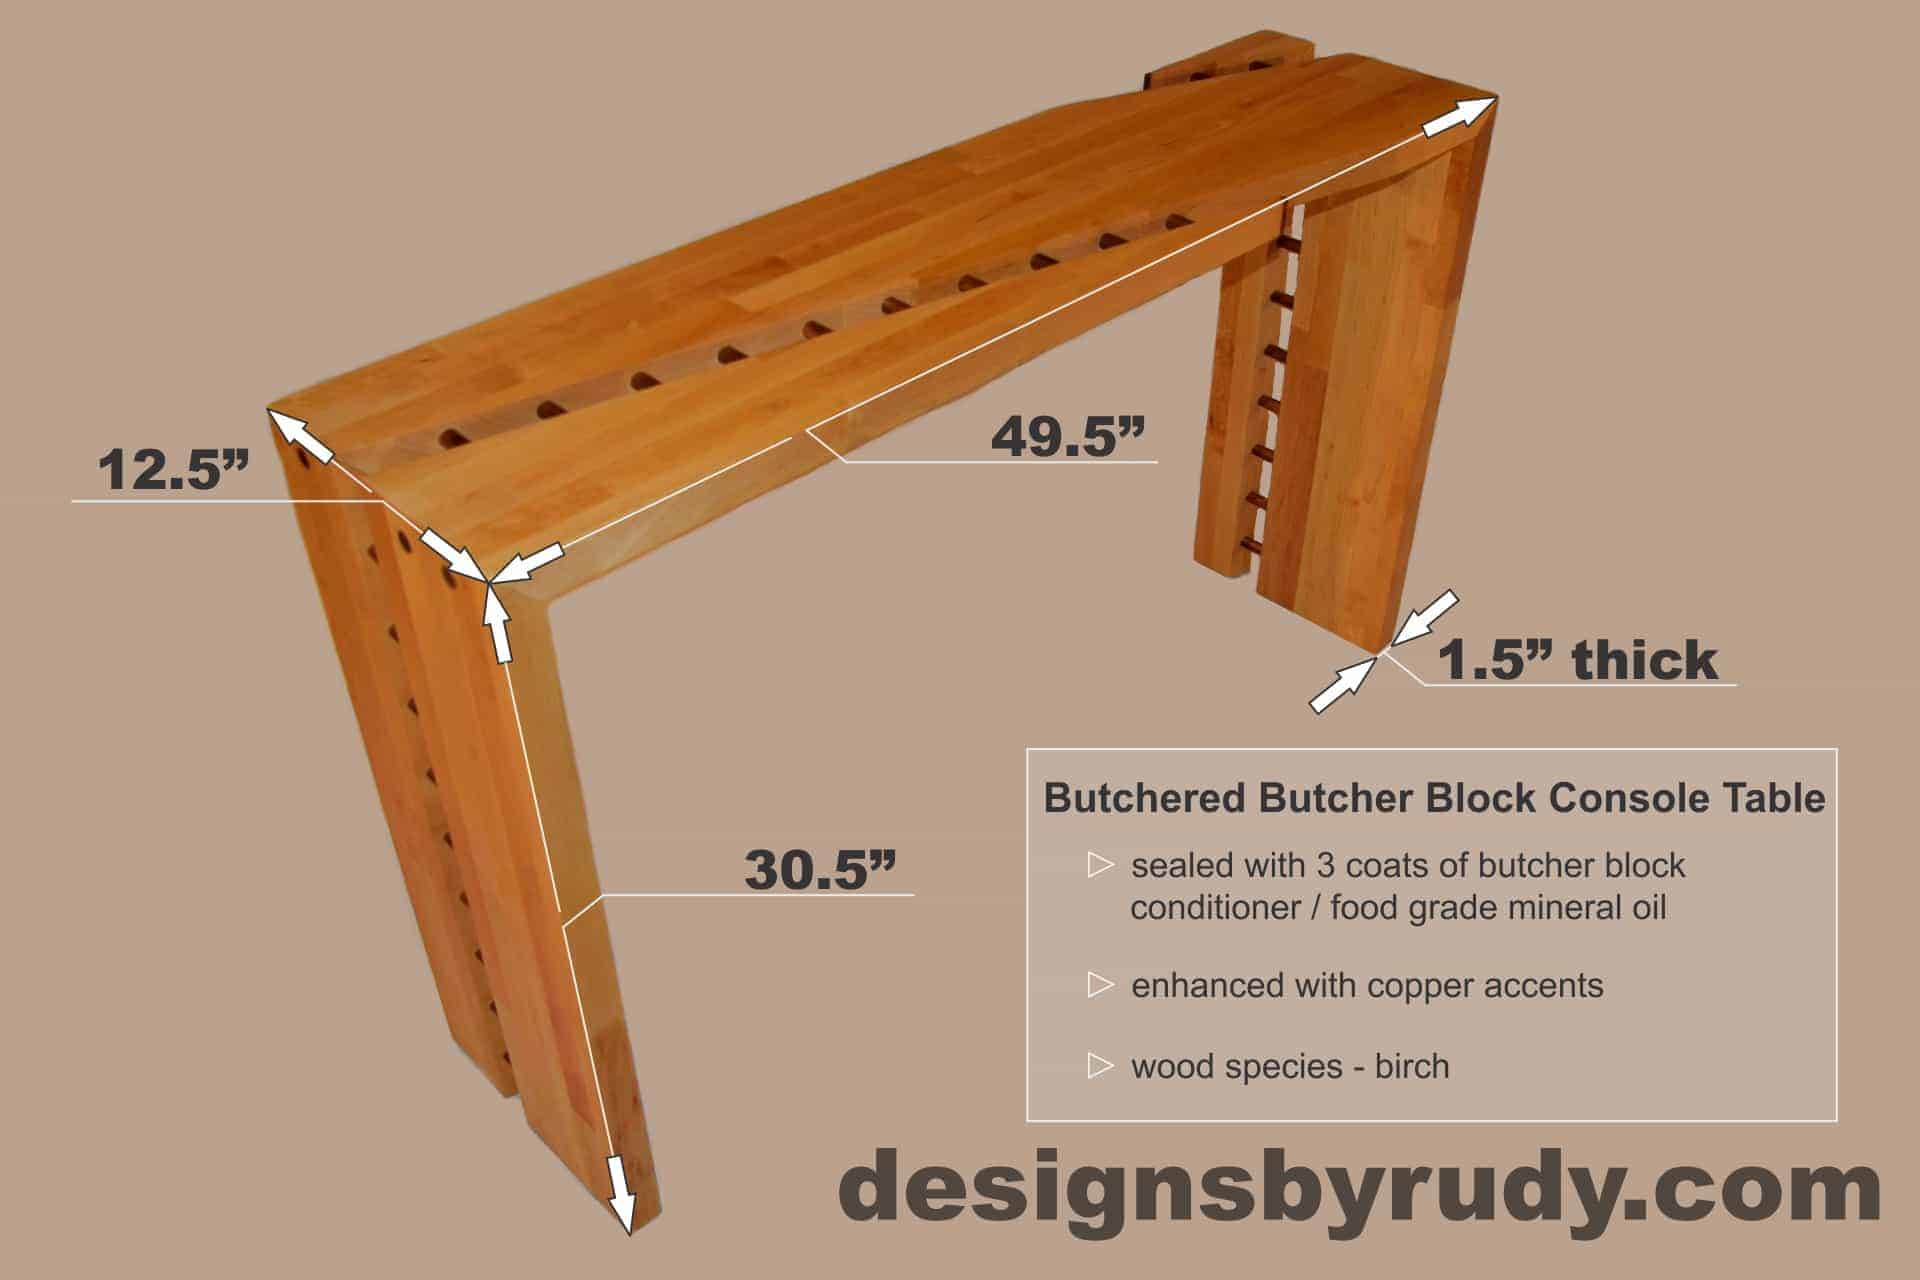 Butcher Block Console Table Dimensions